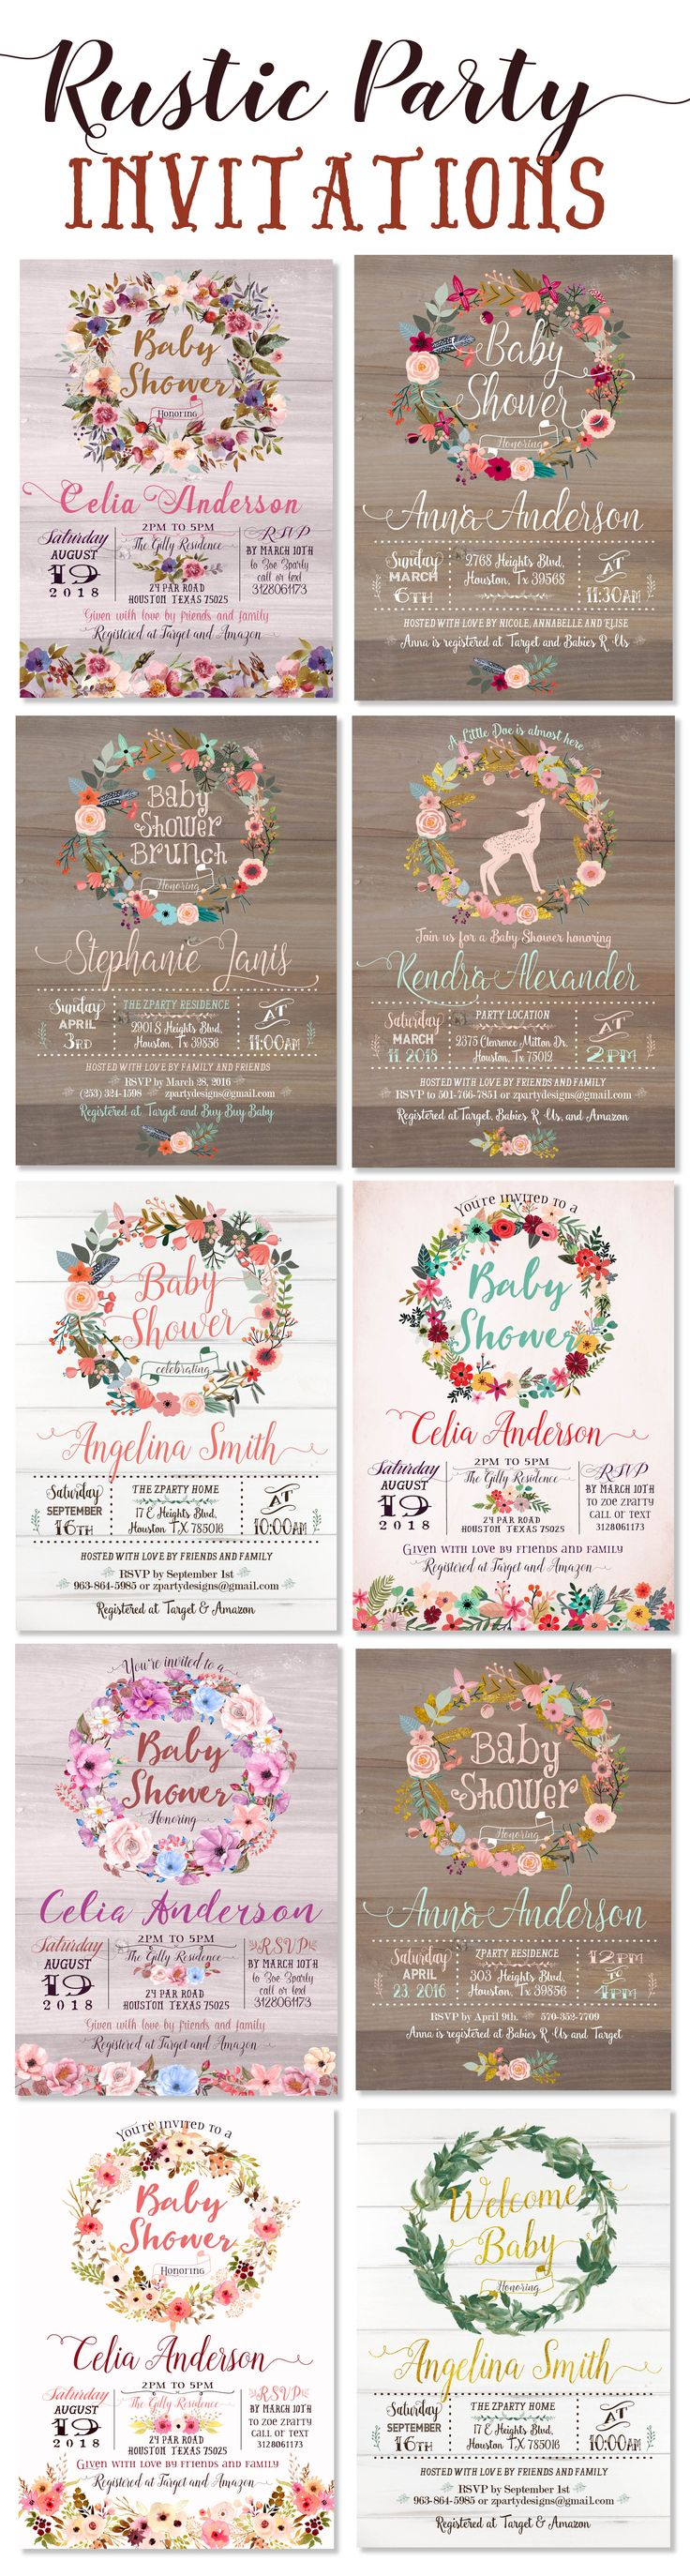 Beautiful rustic and vintage baby shower invitations and party cards featuring wood background, floral wreath, fall and autumn flowers, gold, pink, soft blue floral designs .. perfect for baby shower invitation, birthday invitation or any party invitation! These are printable files - digital invitations - on Etsy https://www.etsy.com/shop/ZPartyDesigns?ref=seller-platform-mcnav&search_query=wr